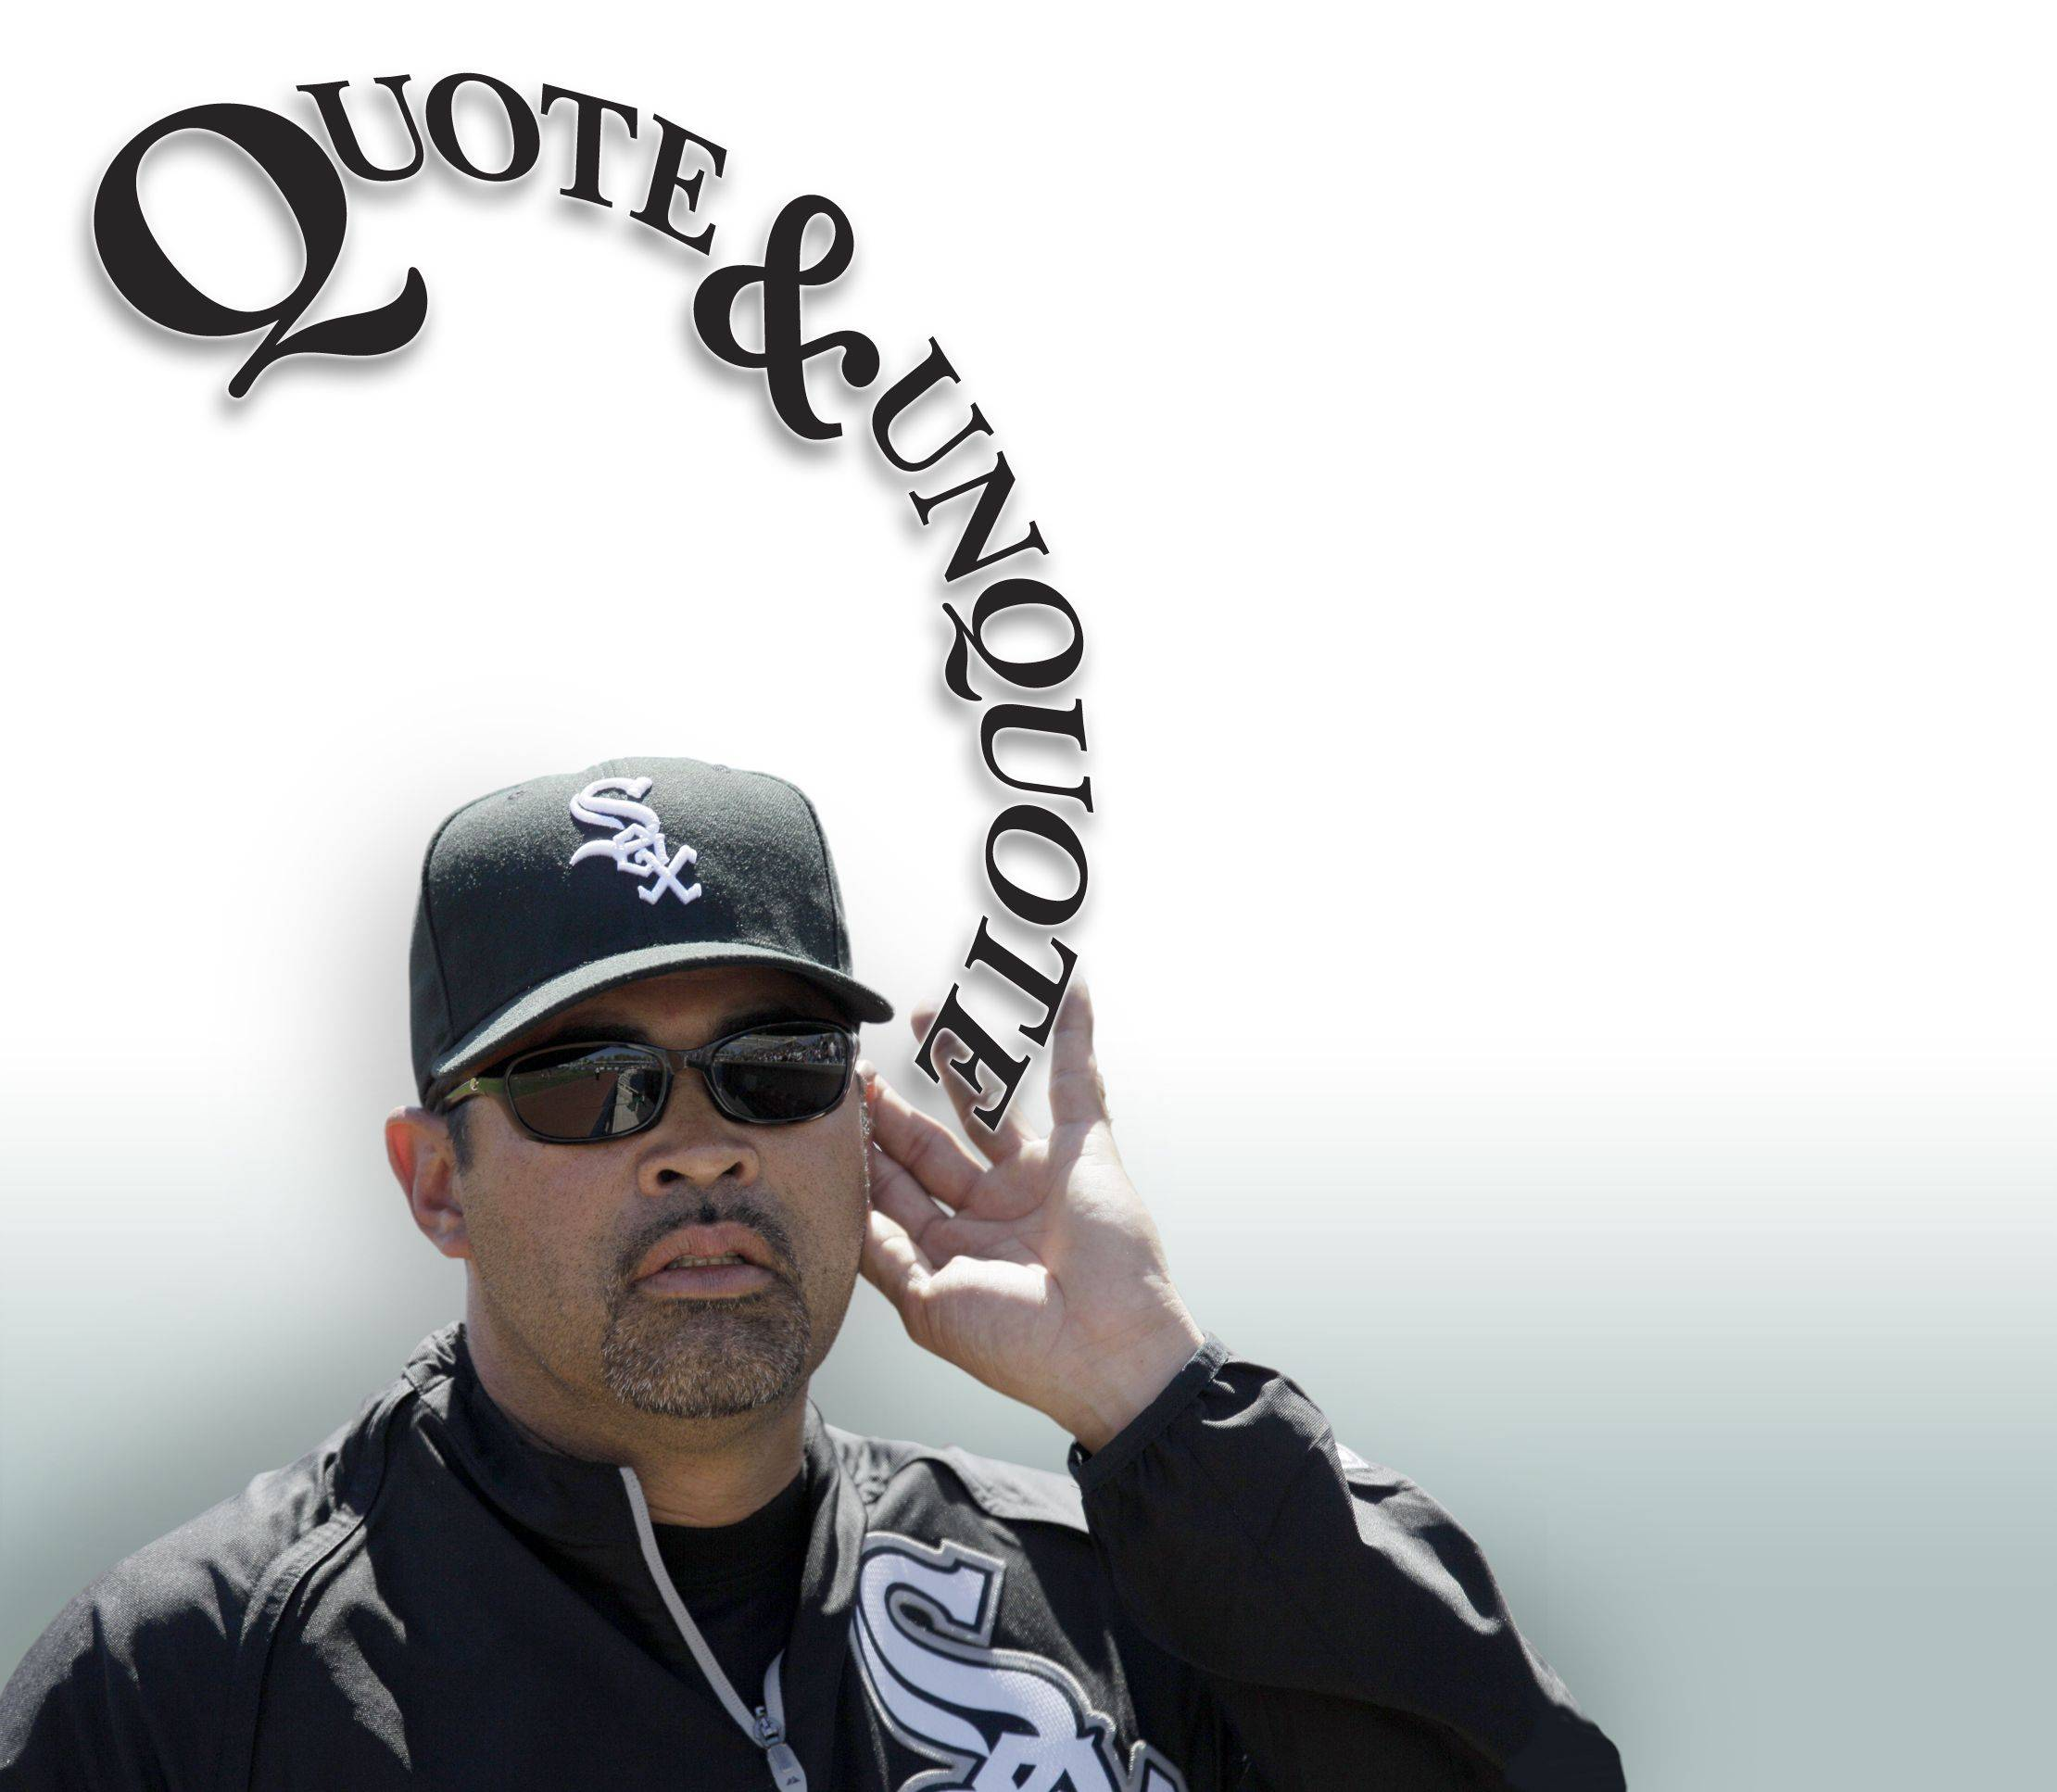 Former White Sox manager Ozzie Guillen had some interesting things to say about his former coaches, and his pet bulldog.